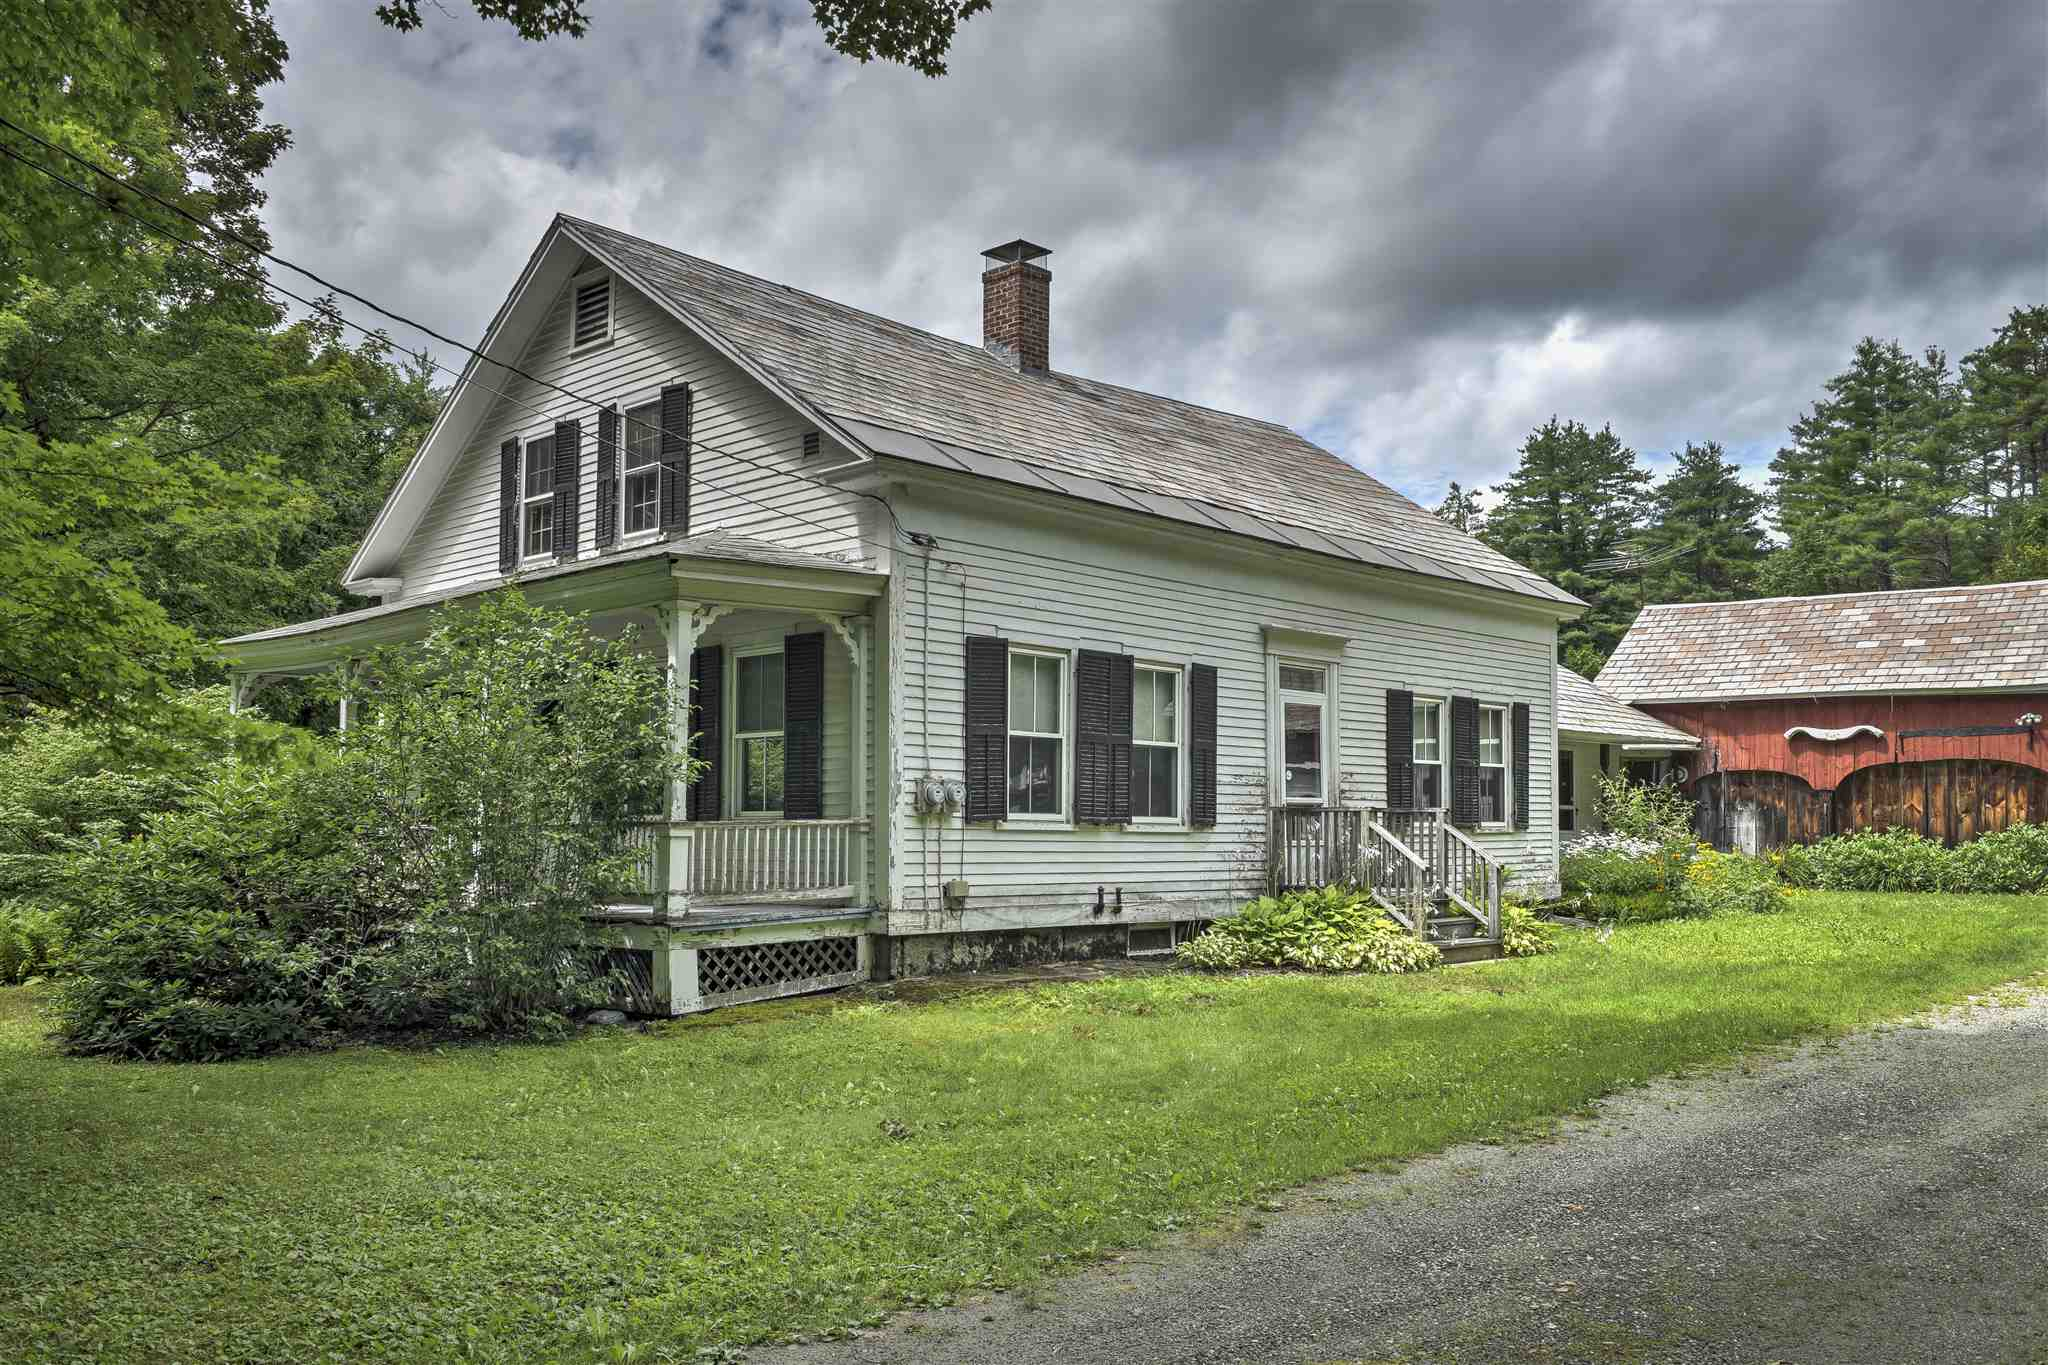 MLS 4819358: 15 Staddle Hill Road, Winchester NH